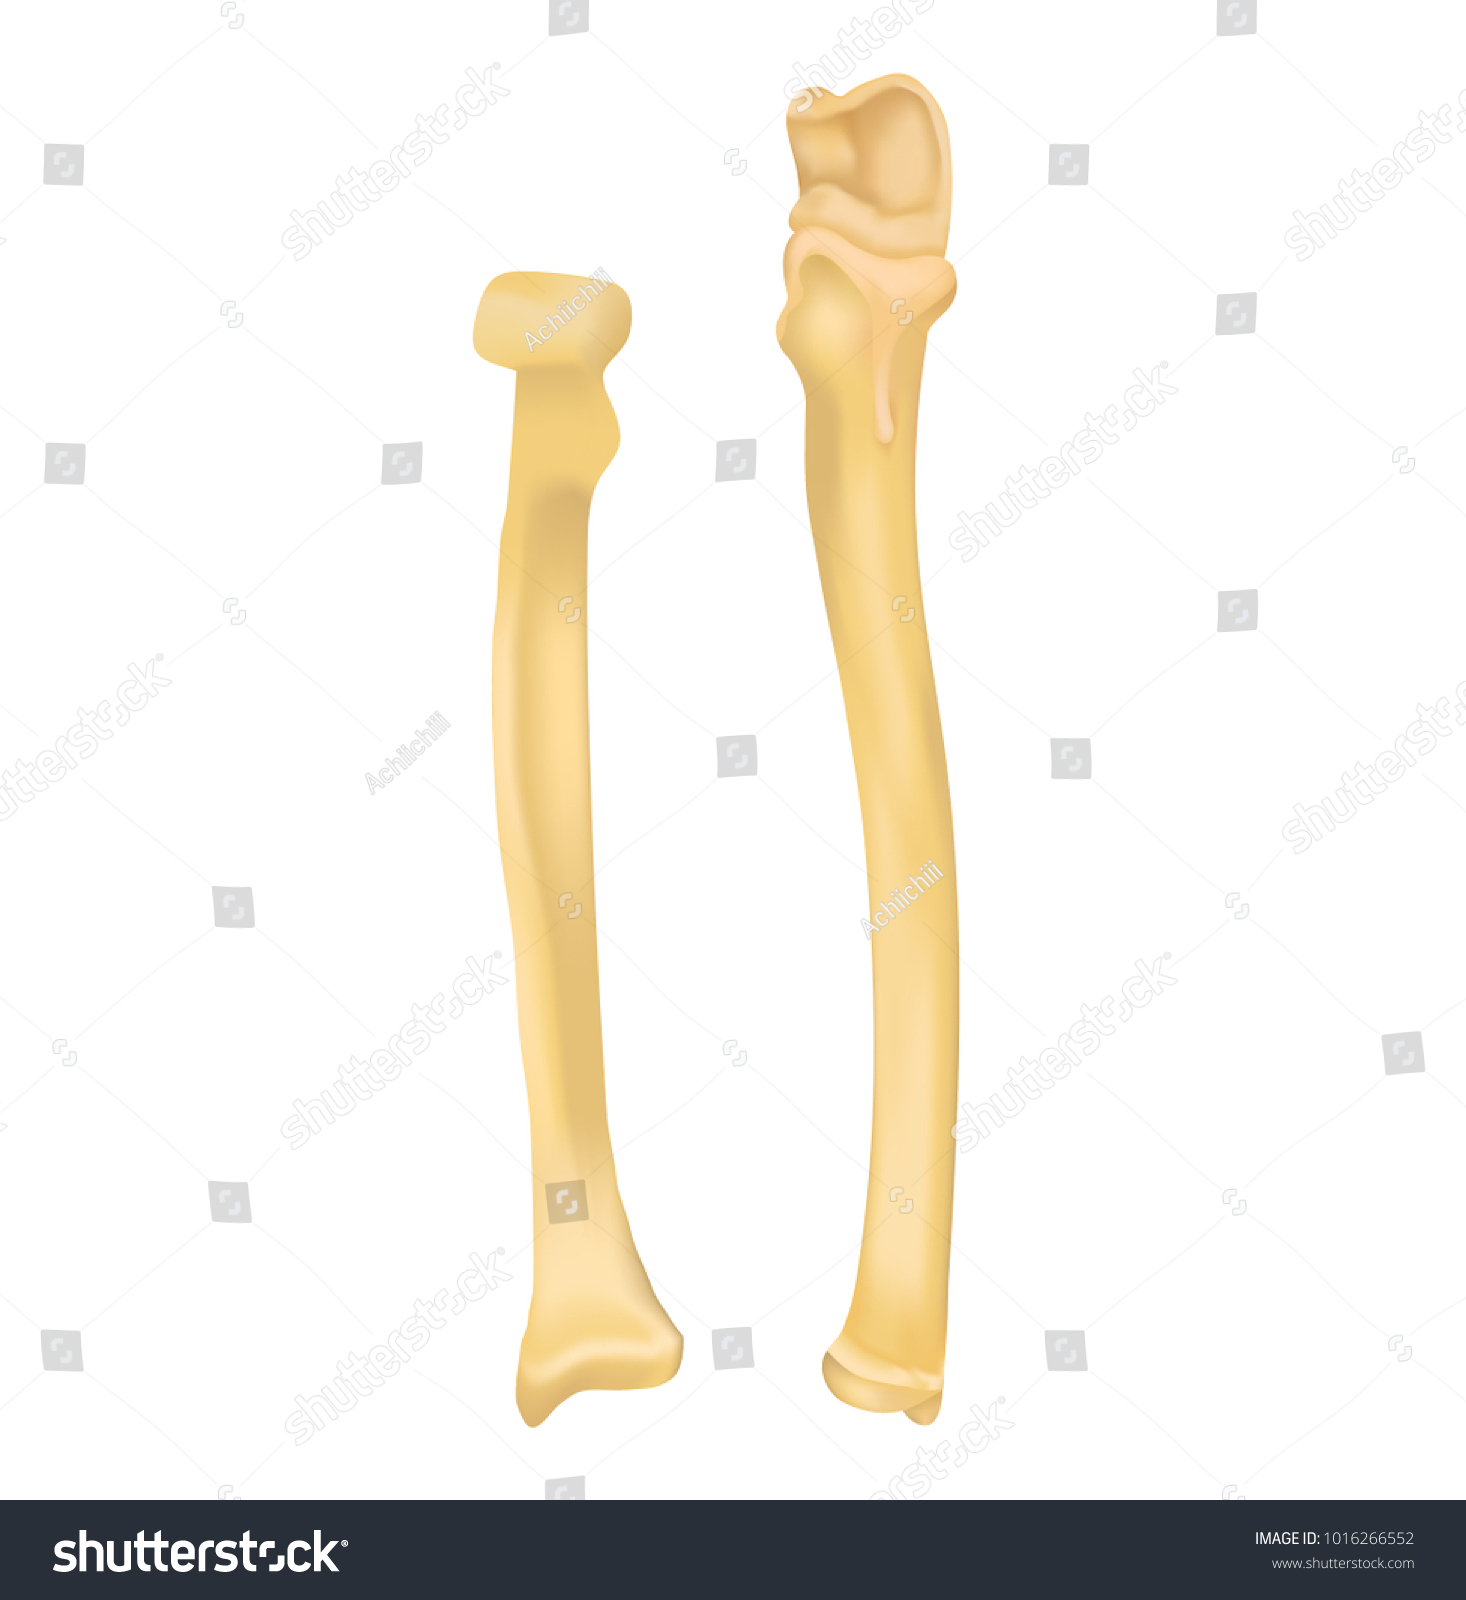 Ulna Radius Stock Photo (Photo, Vector, Illustration) 1016266552 ...